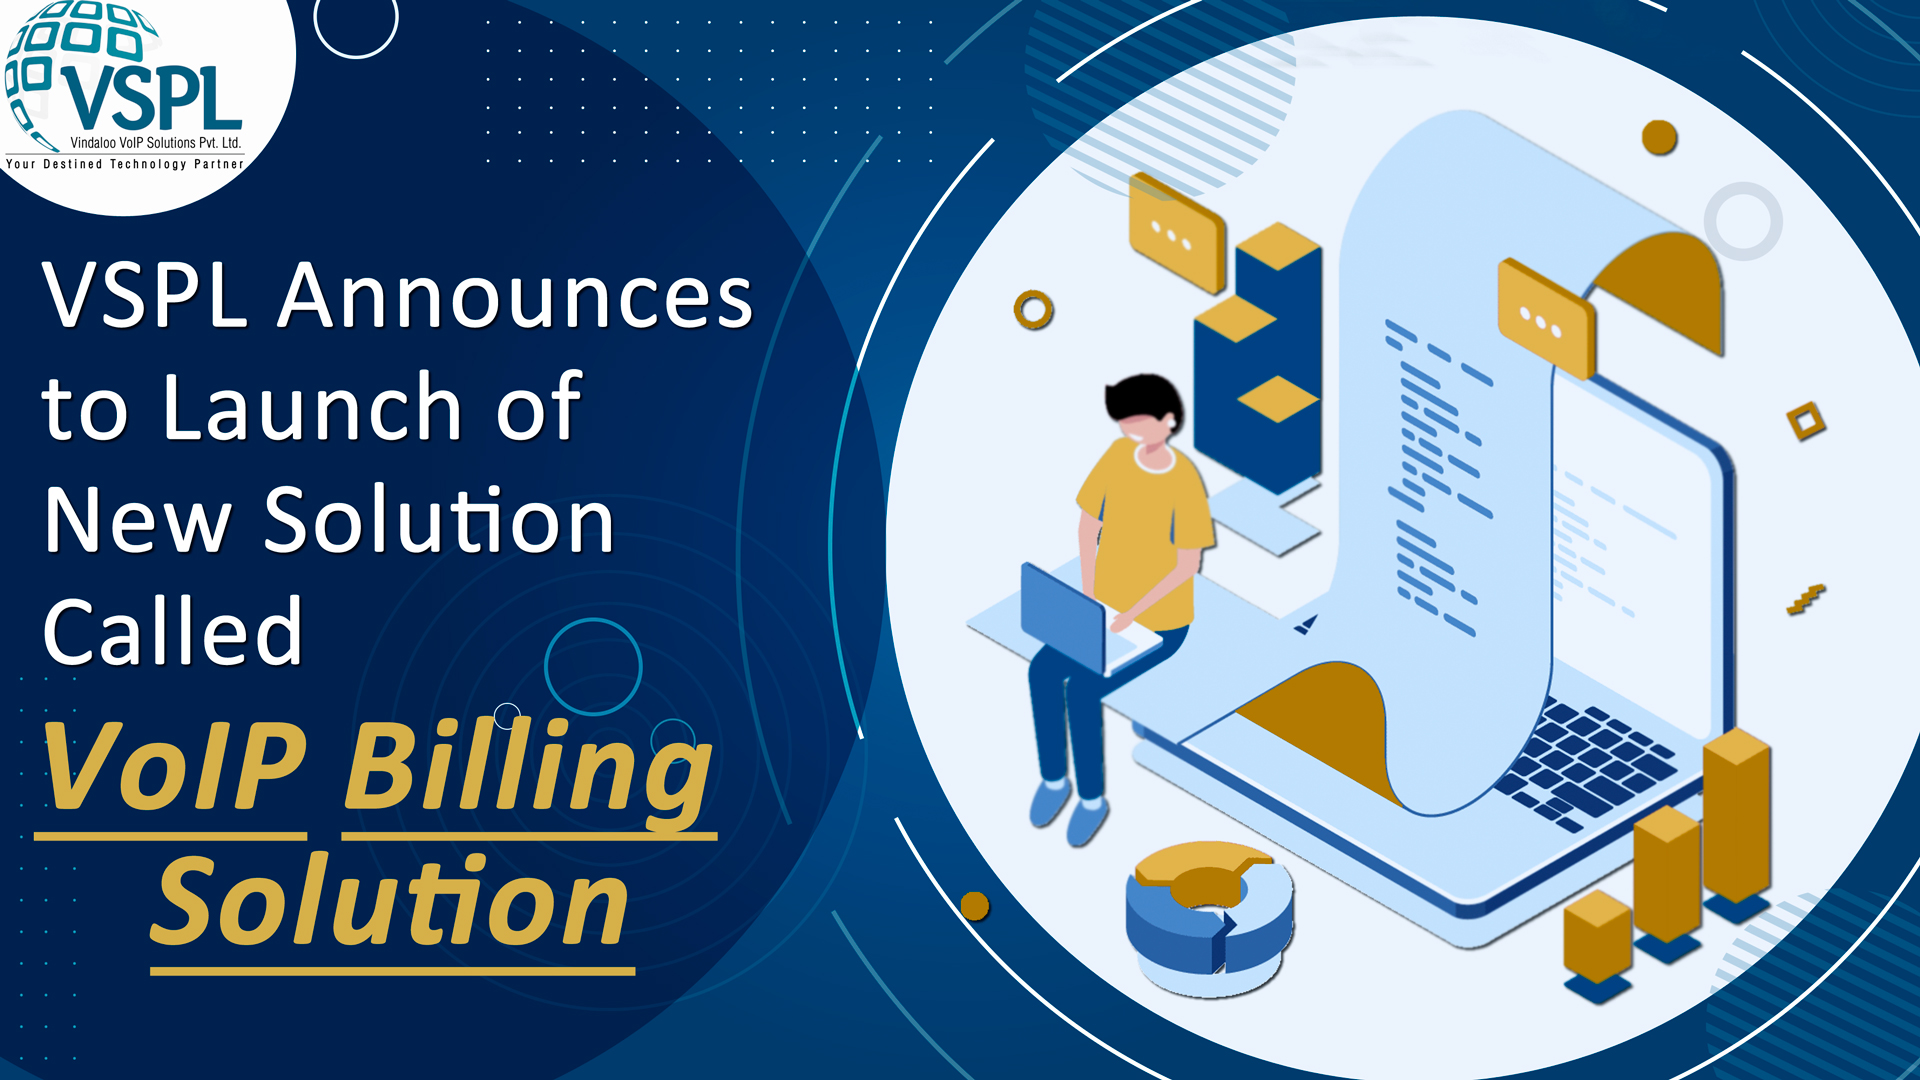 VSPL Announces to Launch of New Solution Called VoIP Billing Solution